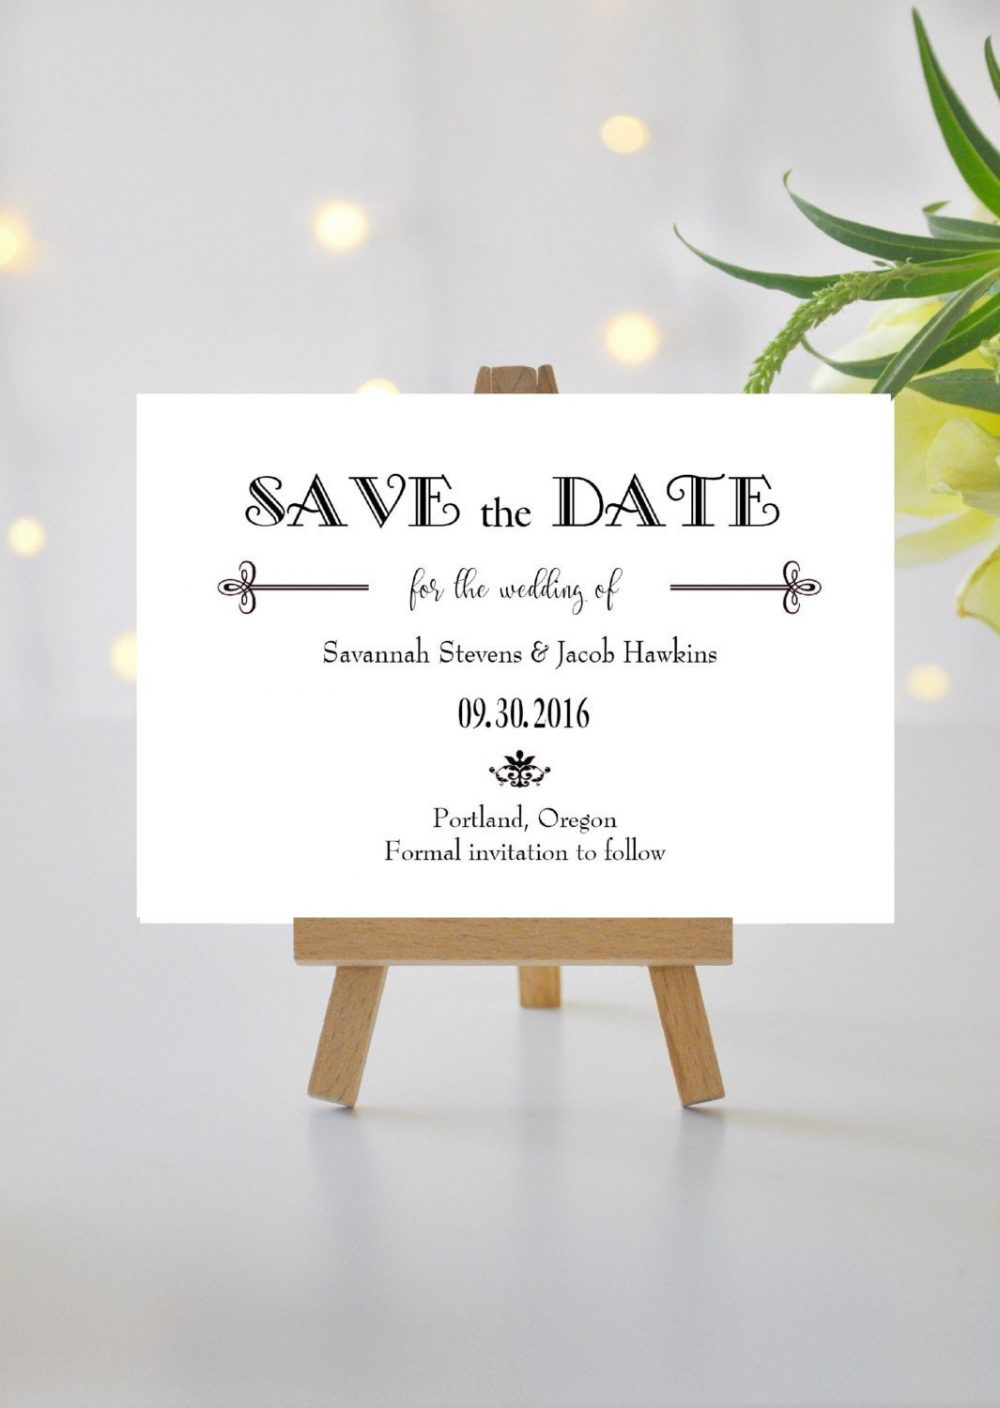 Elegant Save The Date Cards Black & White | Simple Modern Card Tie Printed Wedding Gatsby Style